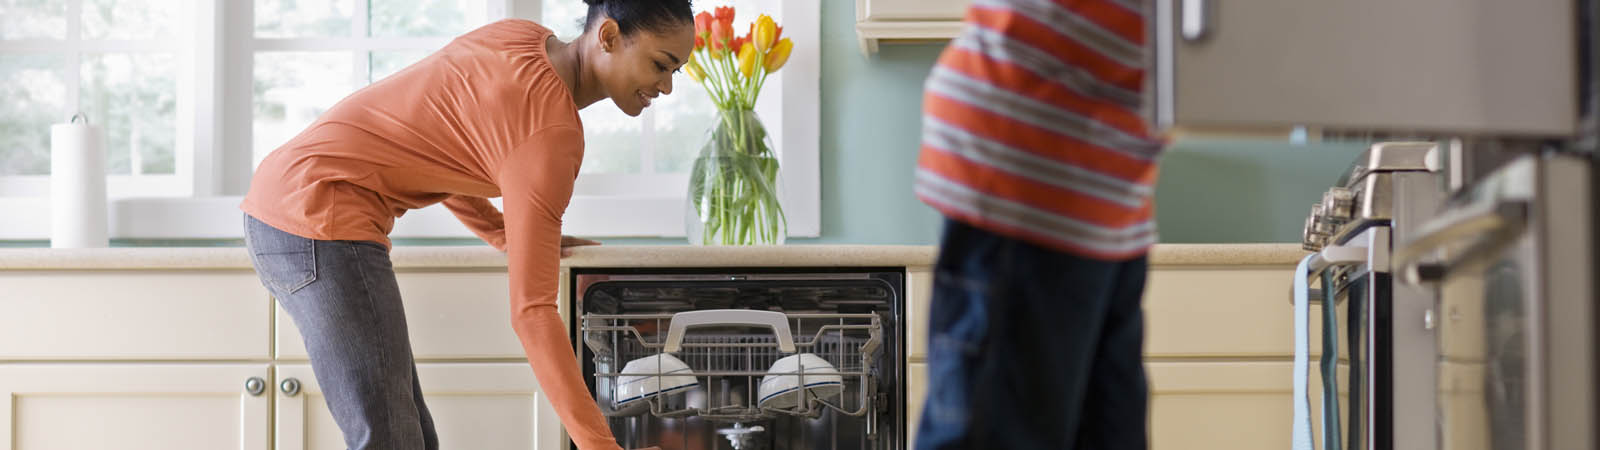 Applying energy efficiency principles in your new kitchen energy saving trust - Home appliances that we thought ...